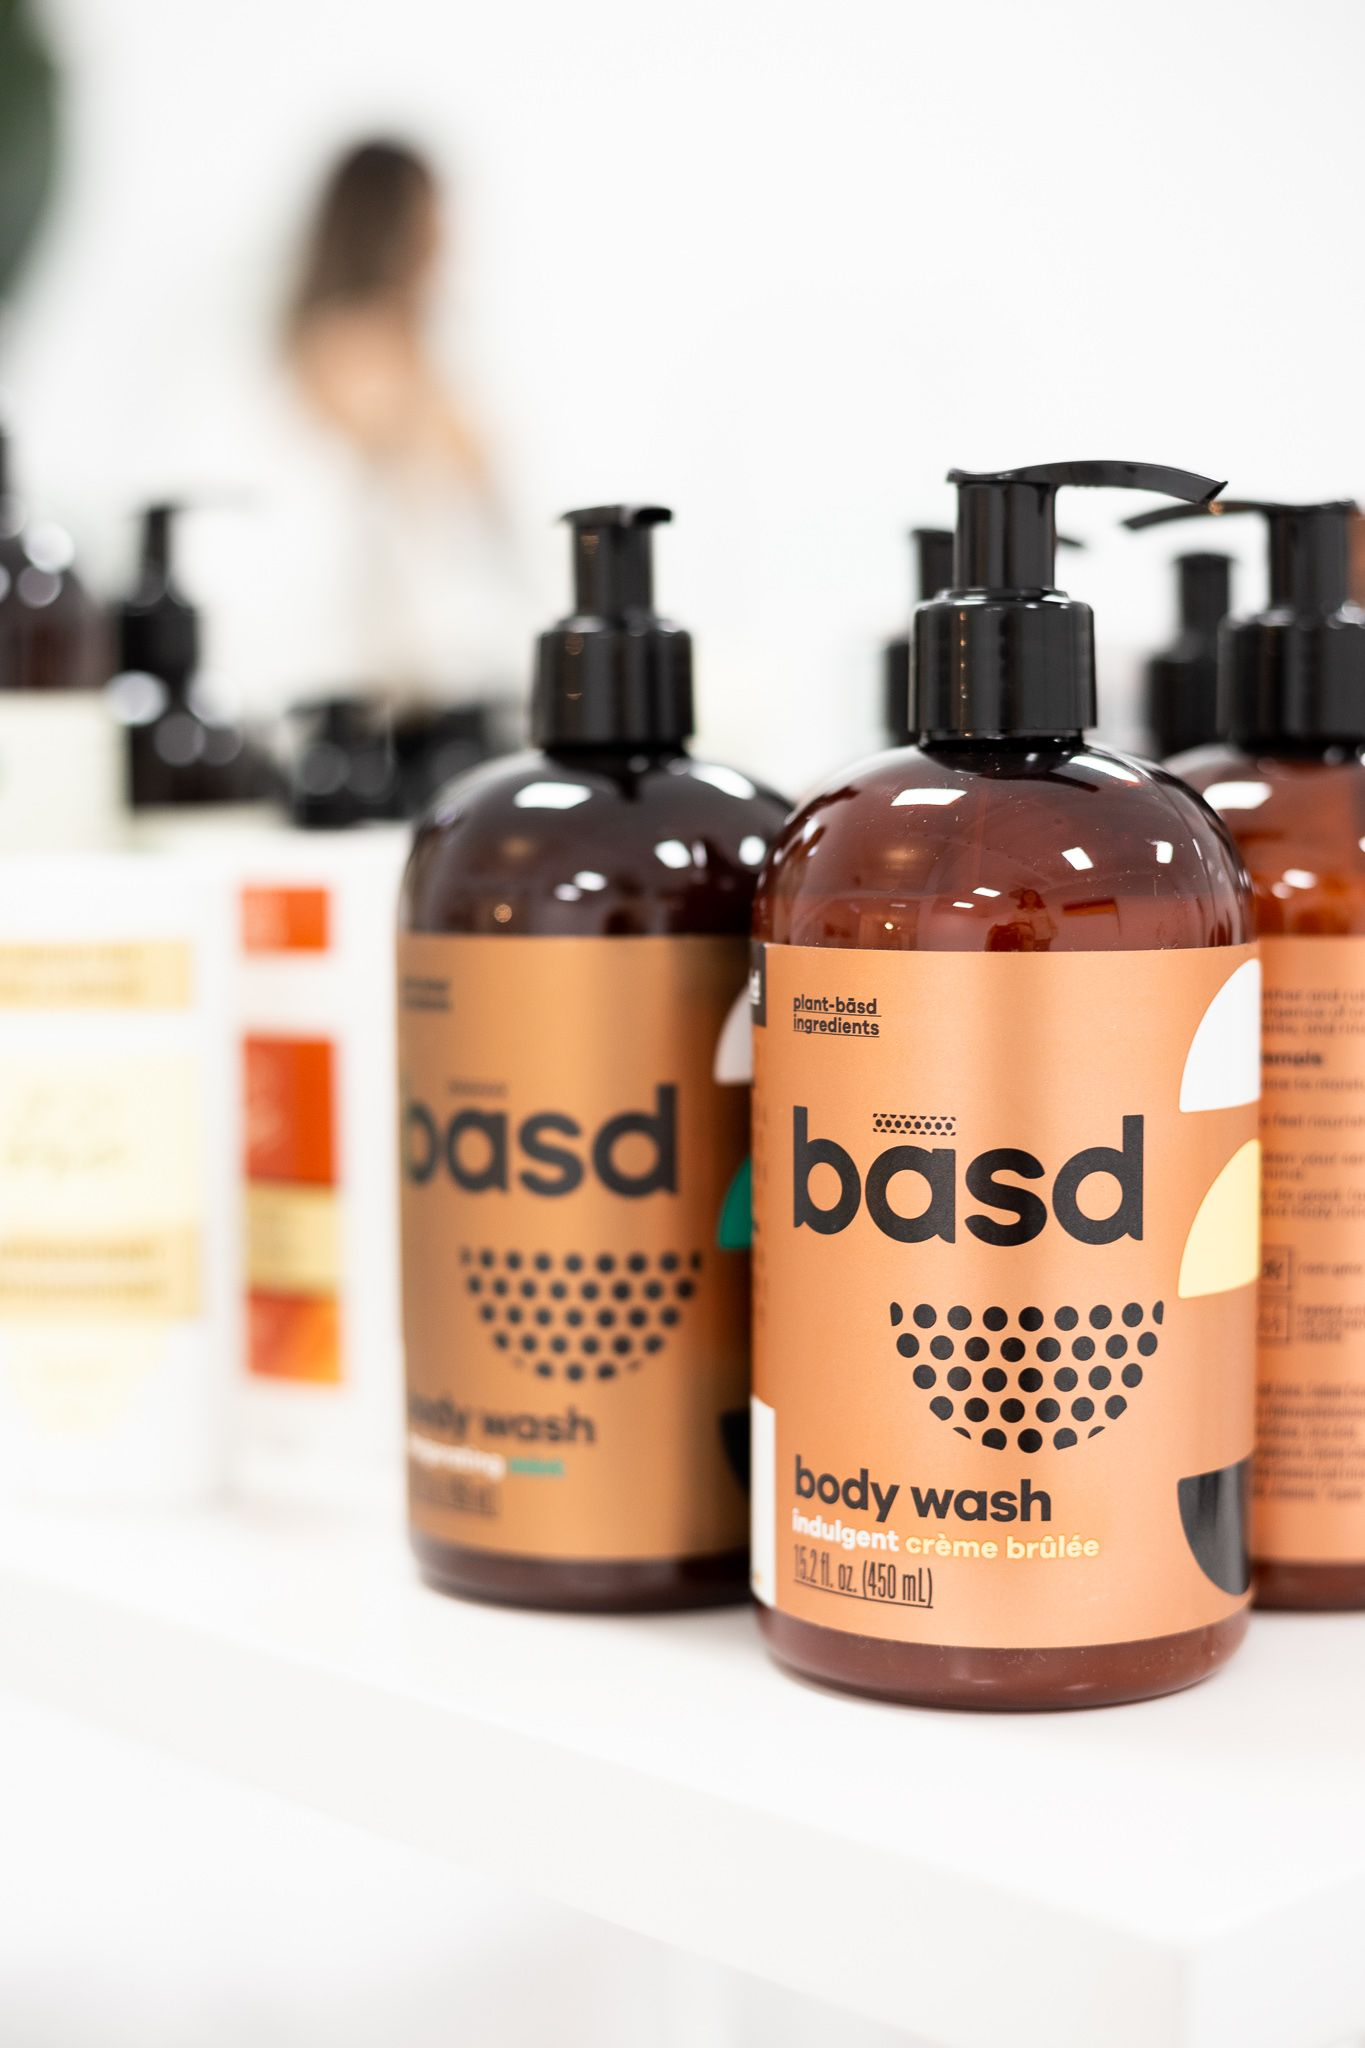 Basd natural body wash with indulgent creme brulee